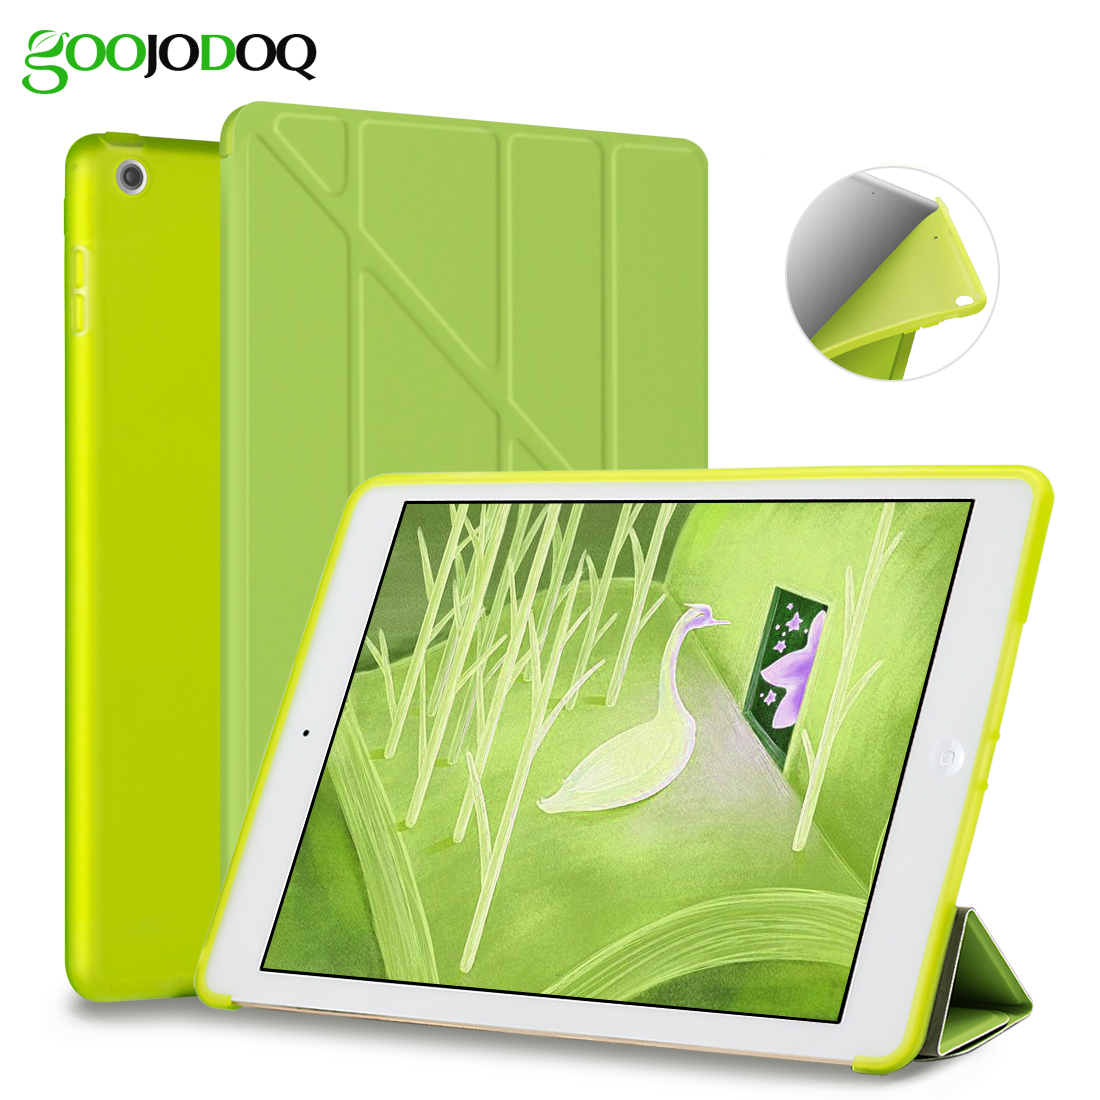 Case for iPad 2 3 4 / Mini 4 3 2 1 Case with Silicone Soft Back, Multi-fold PU Leather Smart Cover for Apple iPad Mini 4 for ipad mini silicone case soft tpu back case bottom case cover for 7 9inch apple ipad mini 1 2 3 4 tablet case for mini ipad